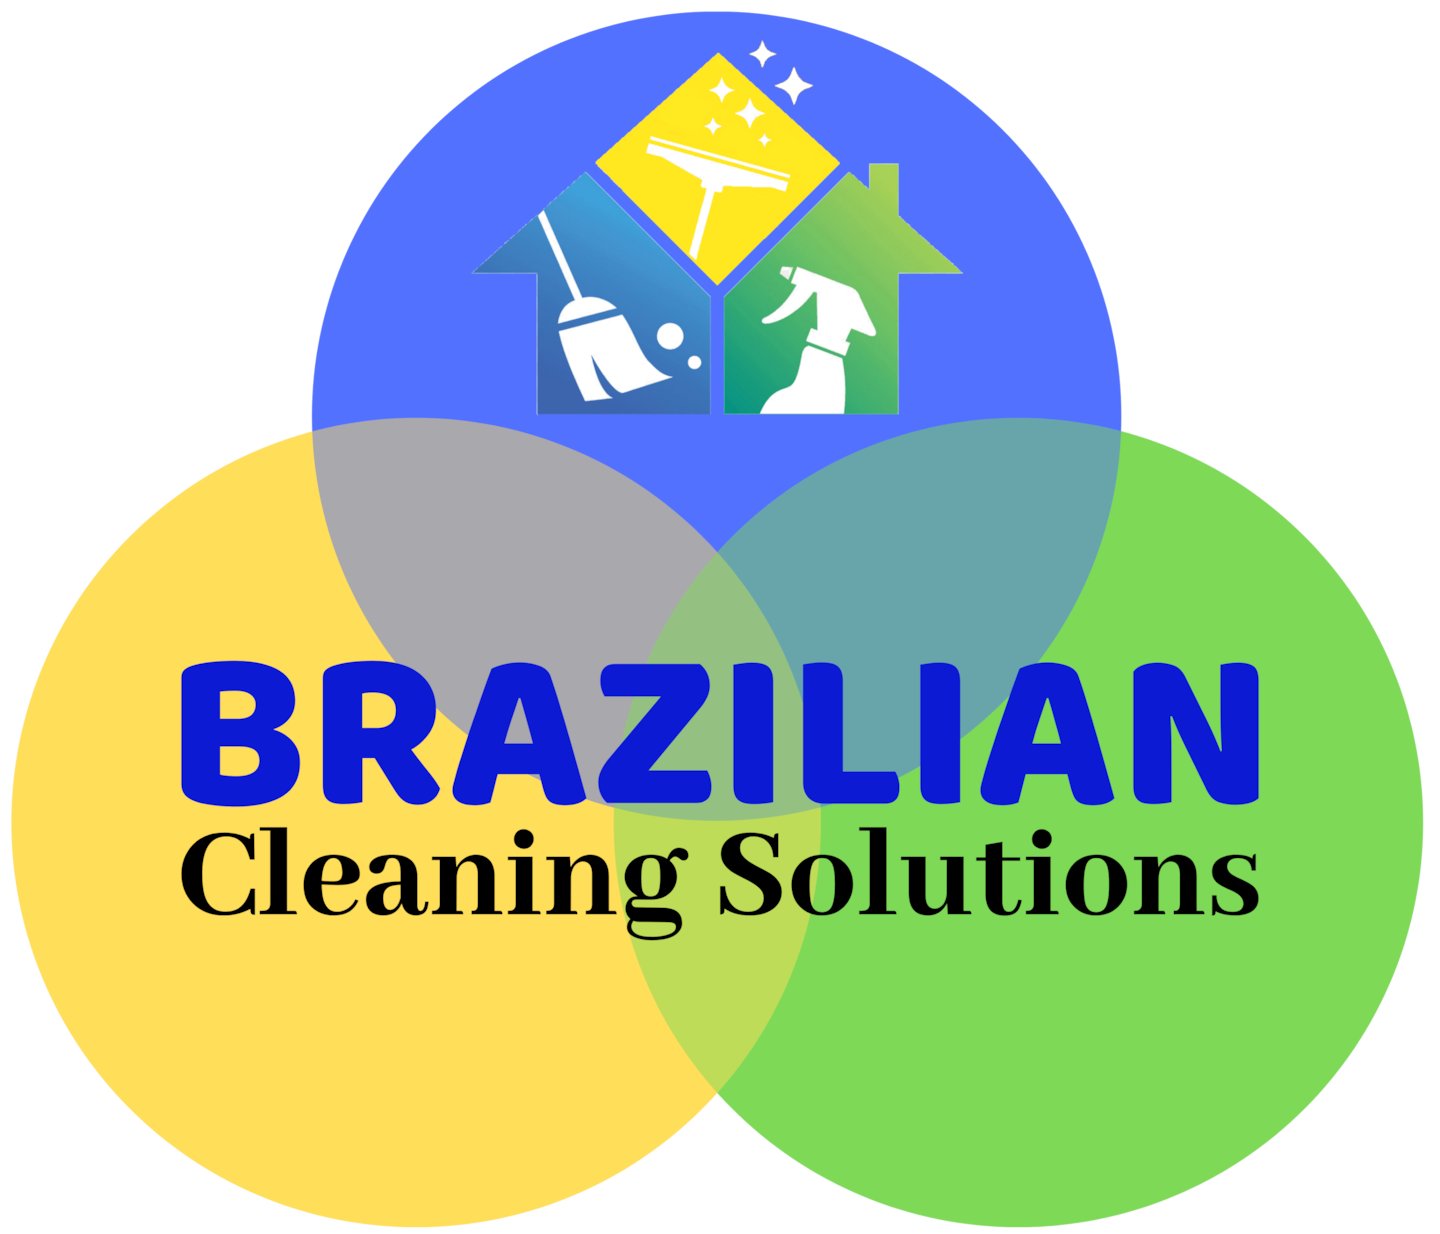 Brazilian Cleaning Solutions LLC